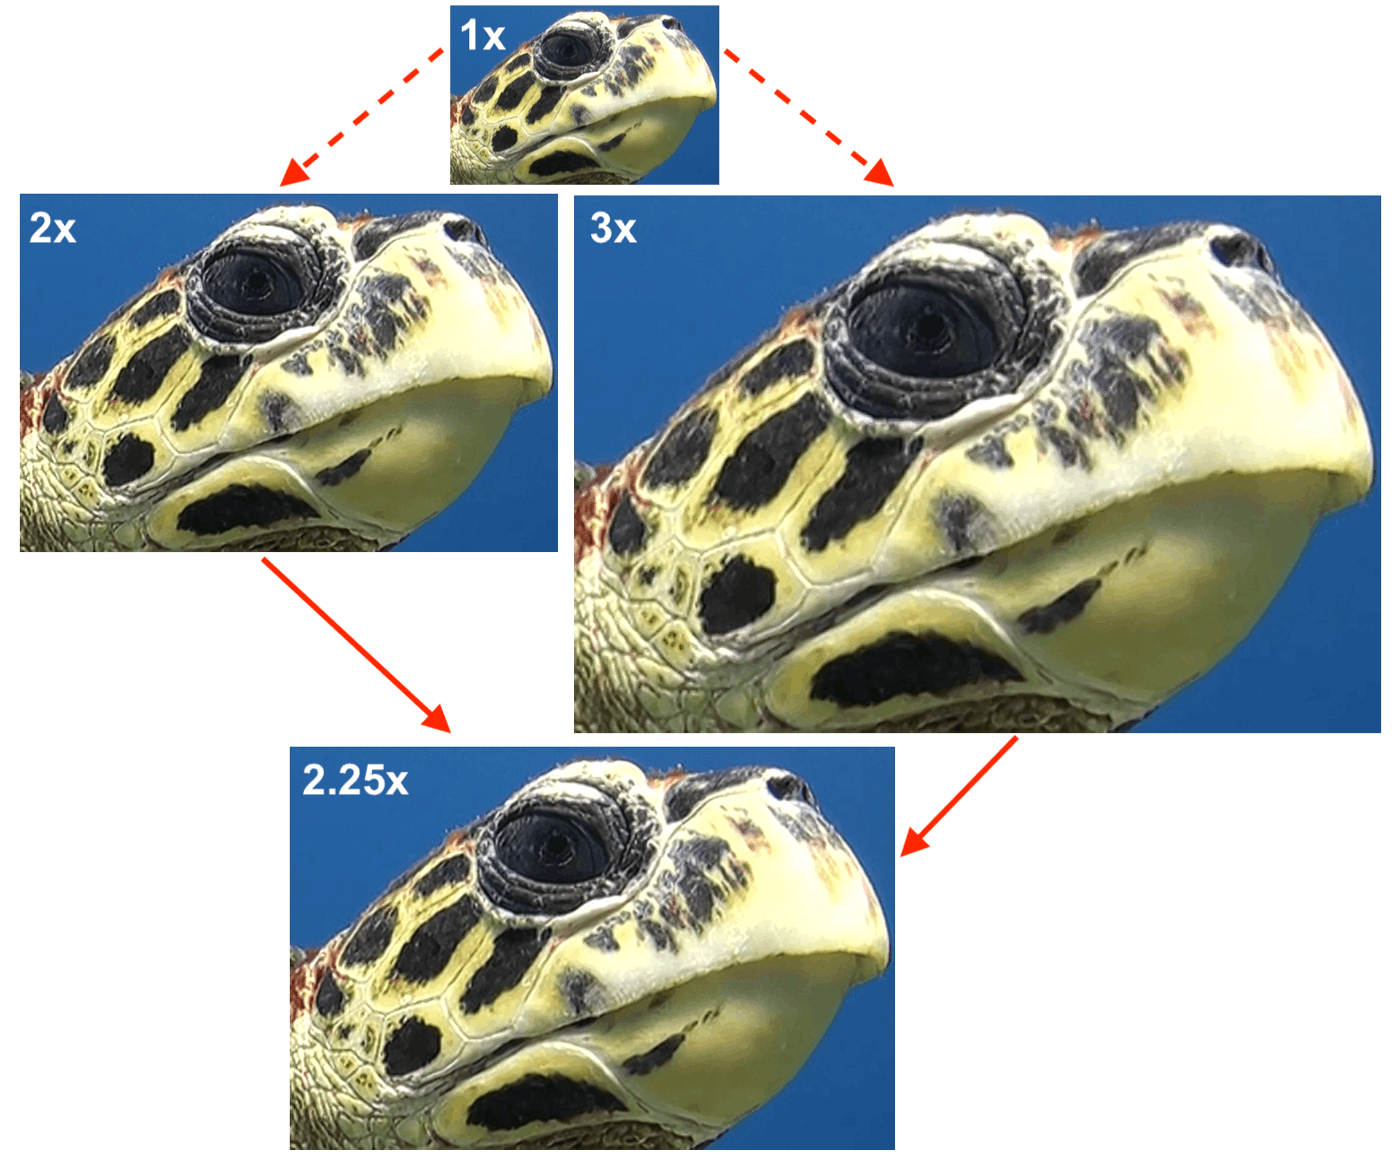 Composite image of upscaled turtle photos